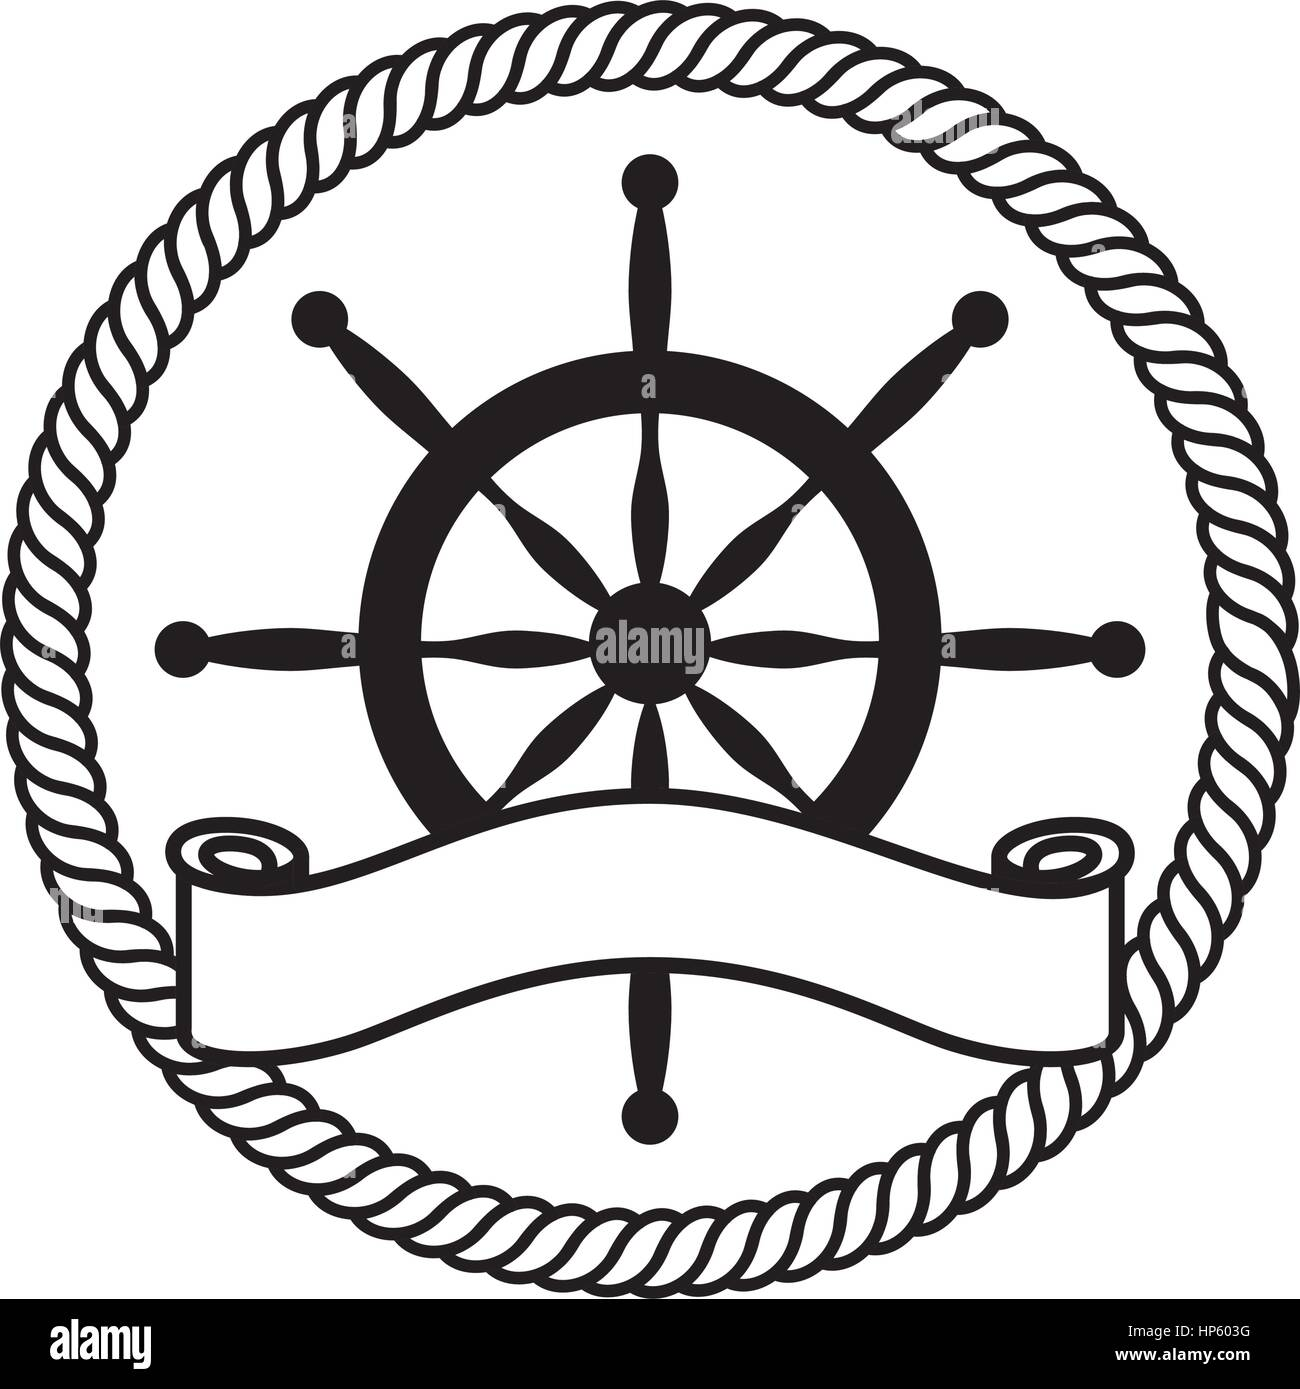 timon boat isolated icon vector illustration design - Stock Image